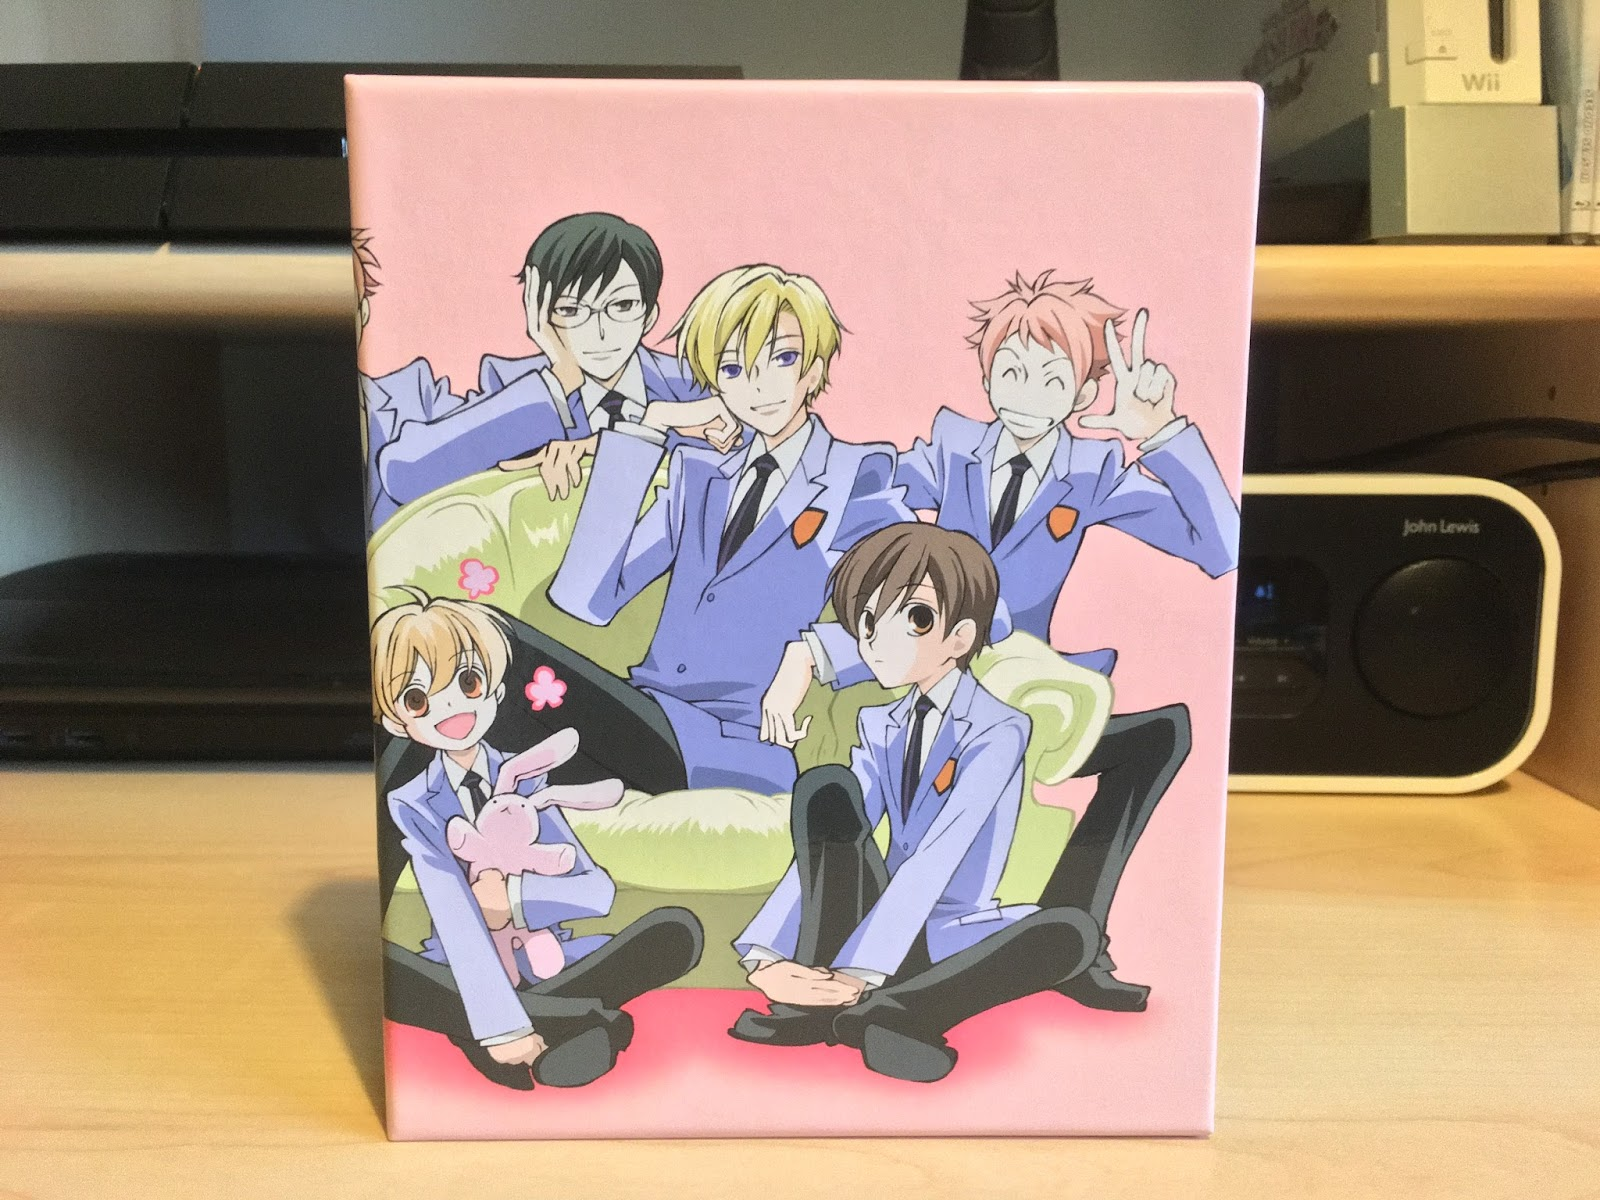 ouran highschool host club video game